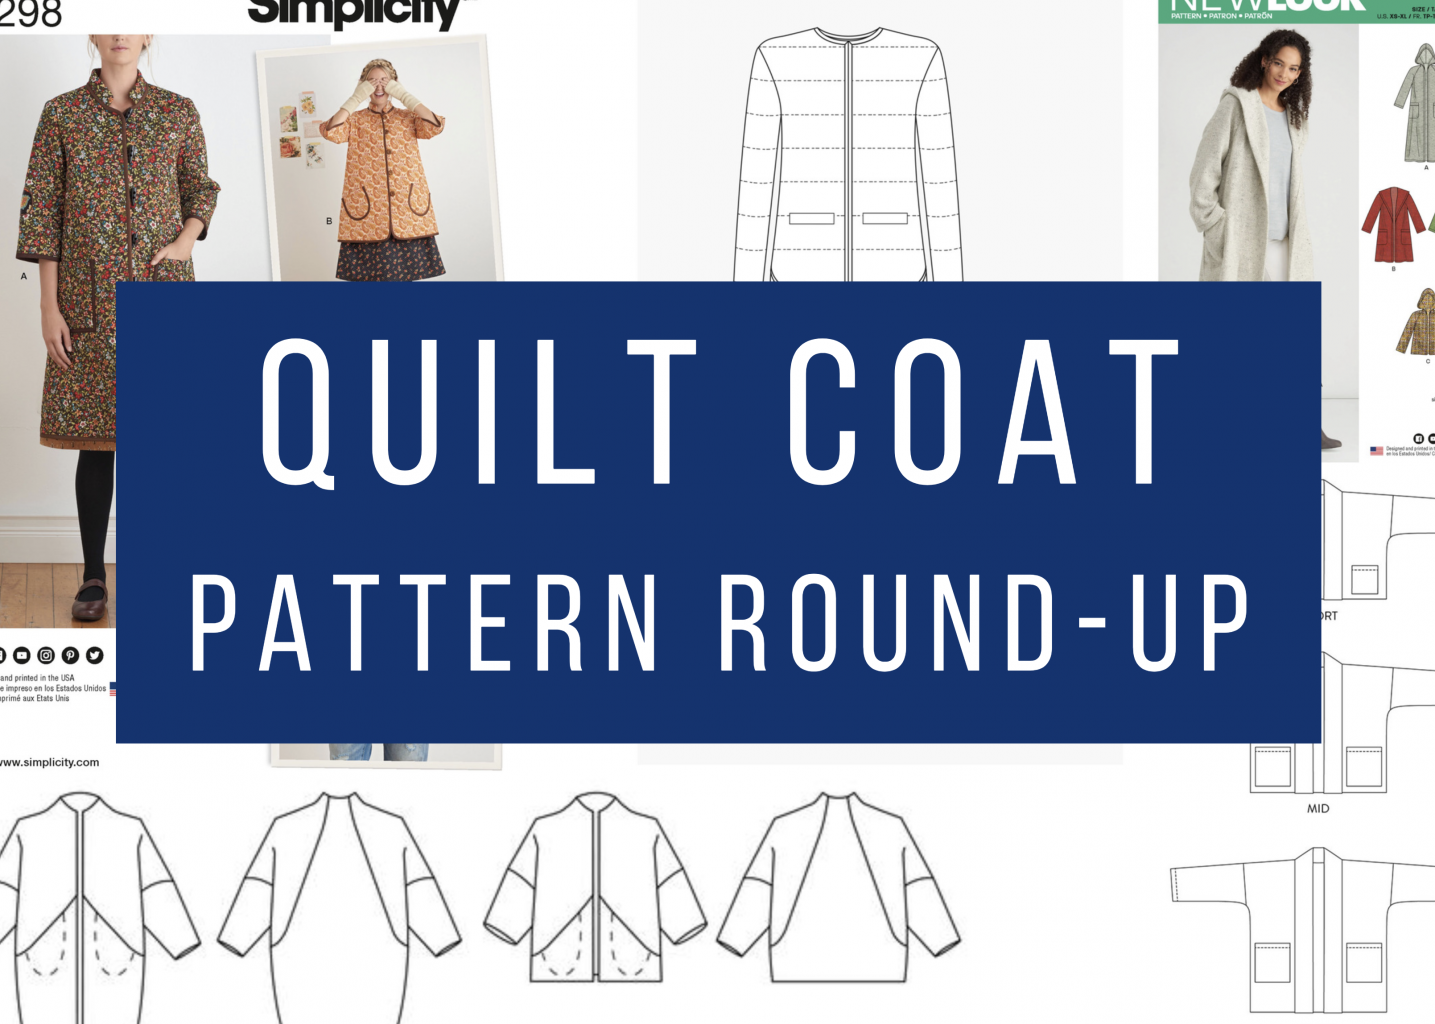 quilt coat pattern round-up how to sew a quilt coat quilt coat tips and tricks